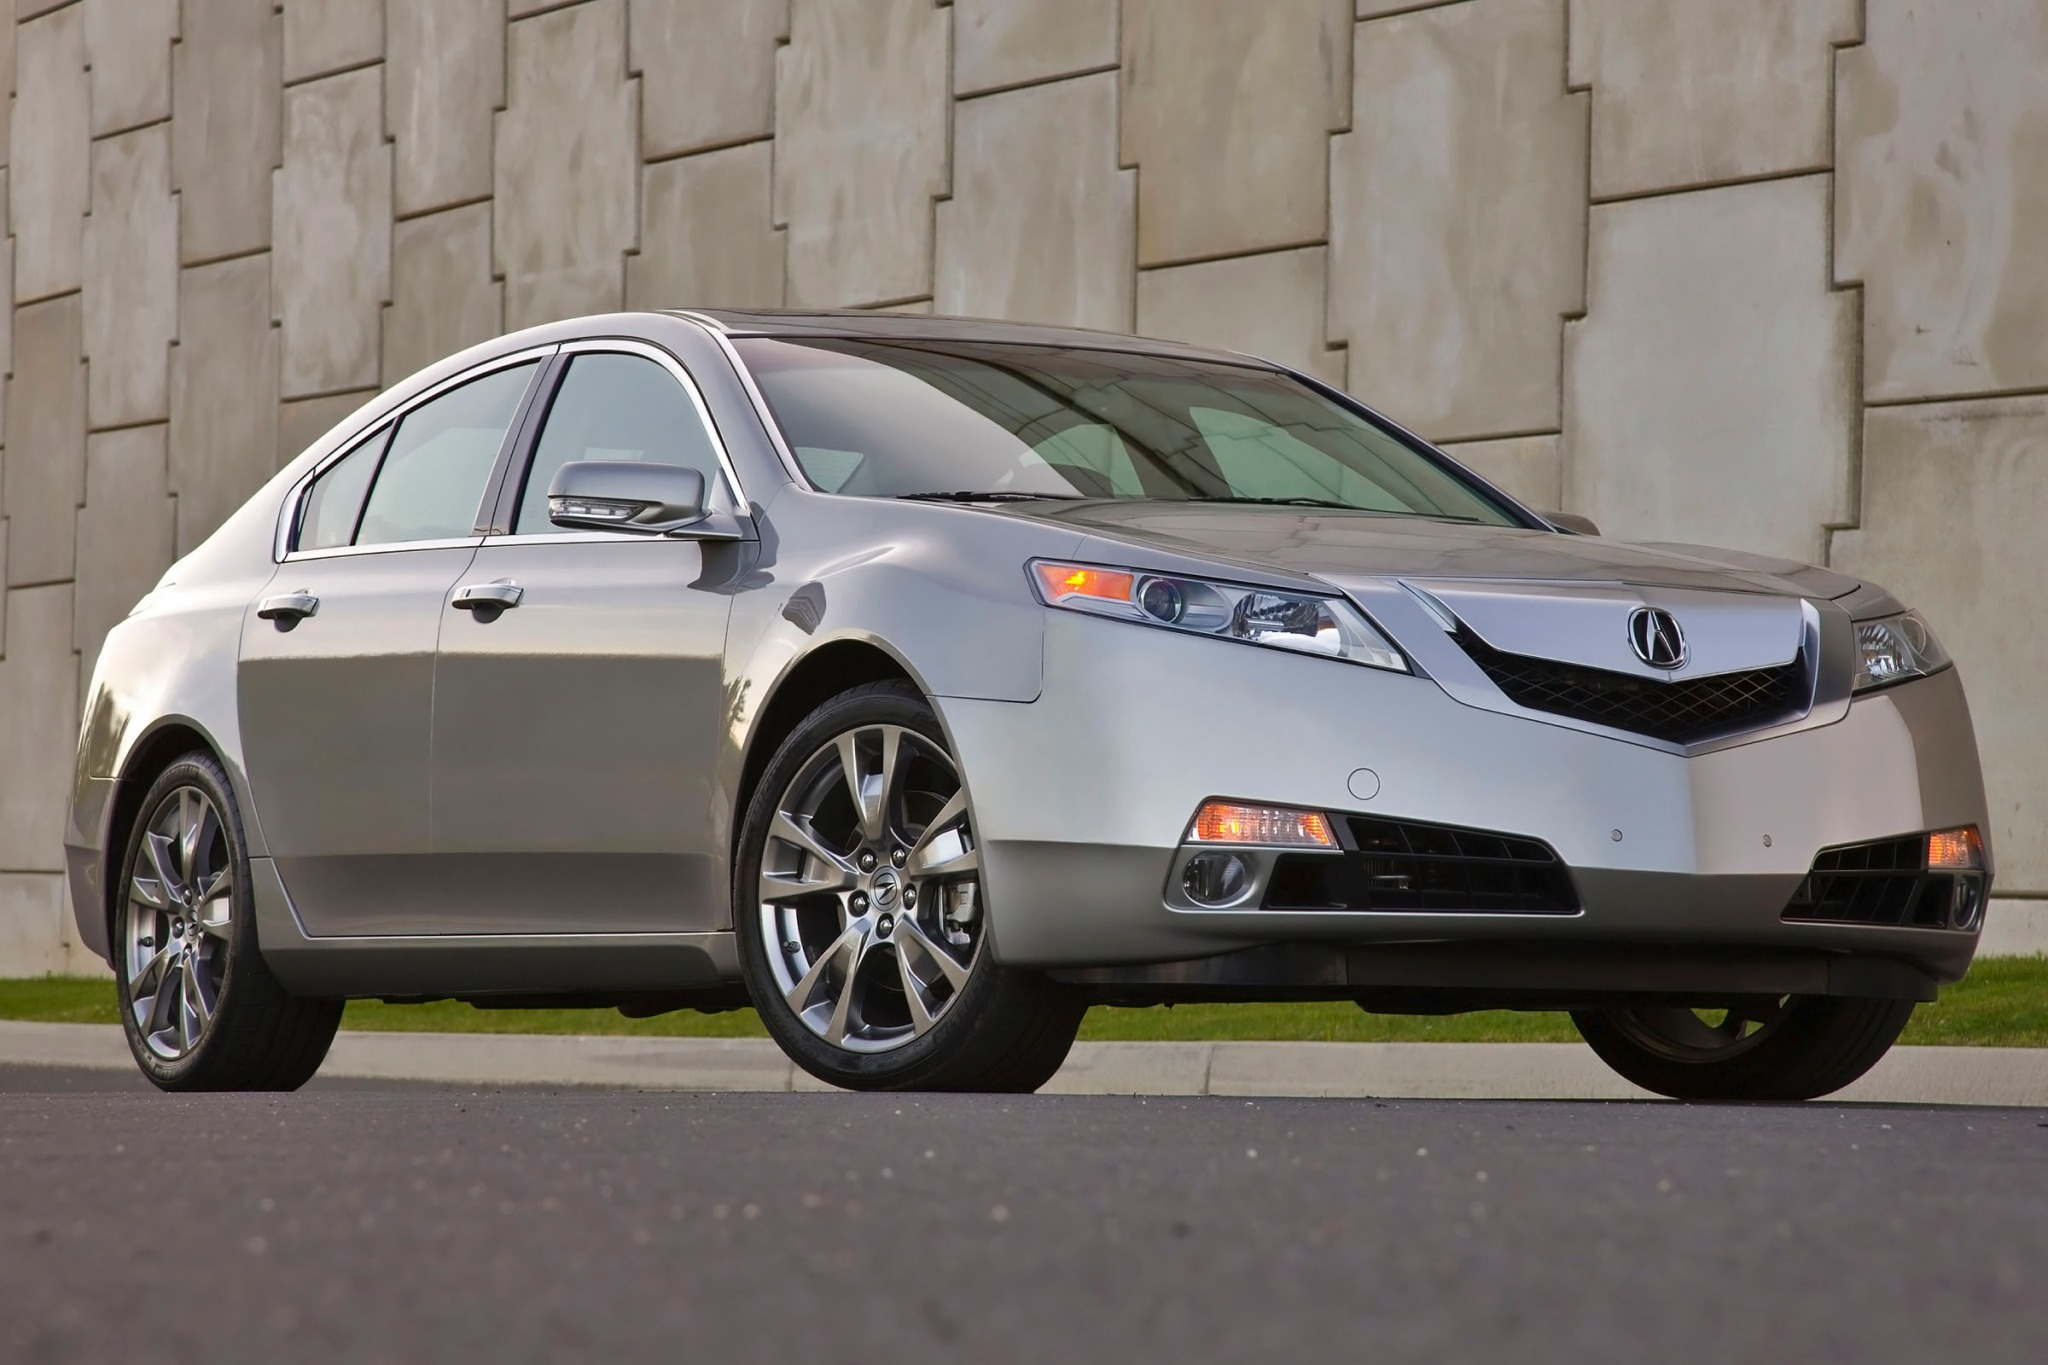 2011 Acura TL Sedan Engin exterior #10